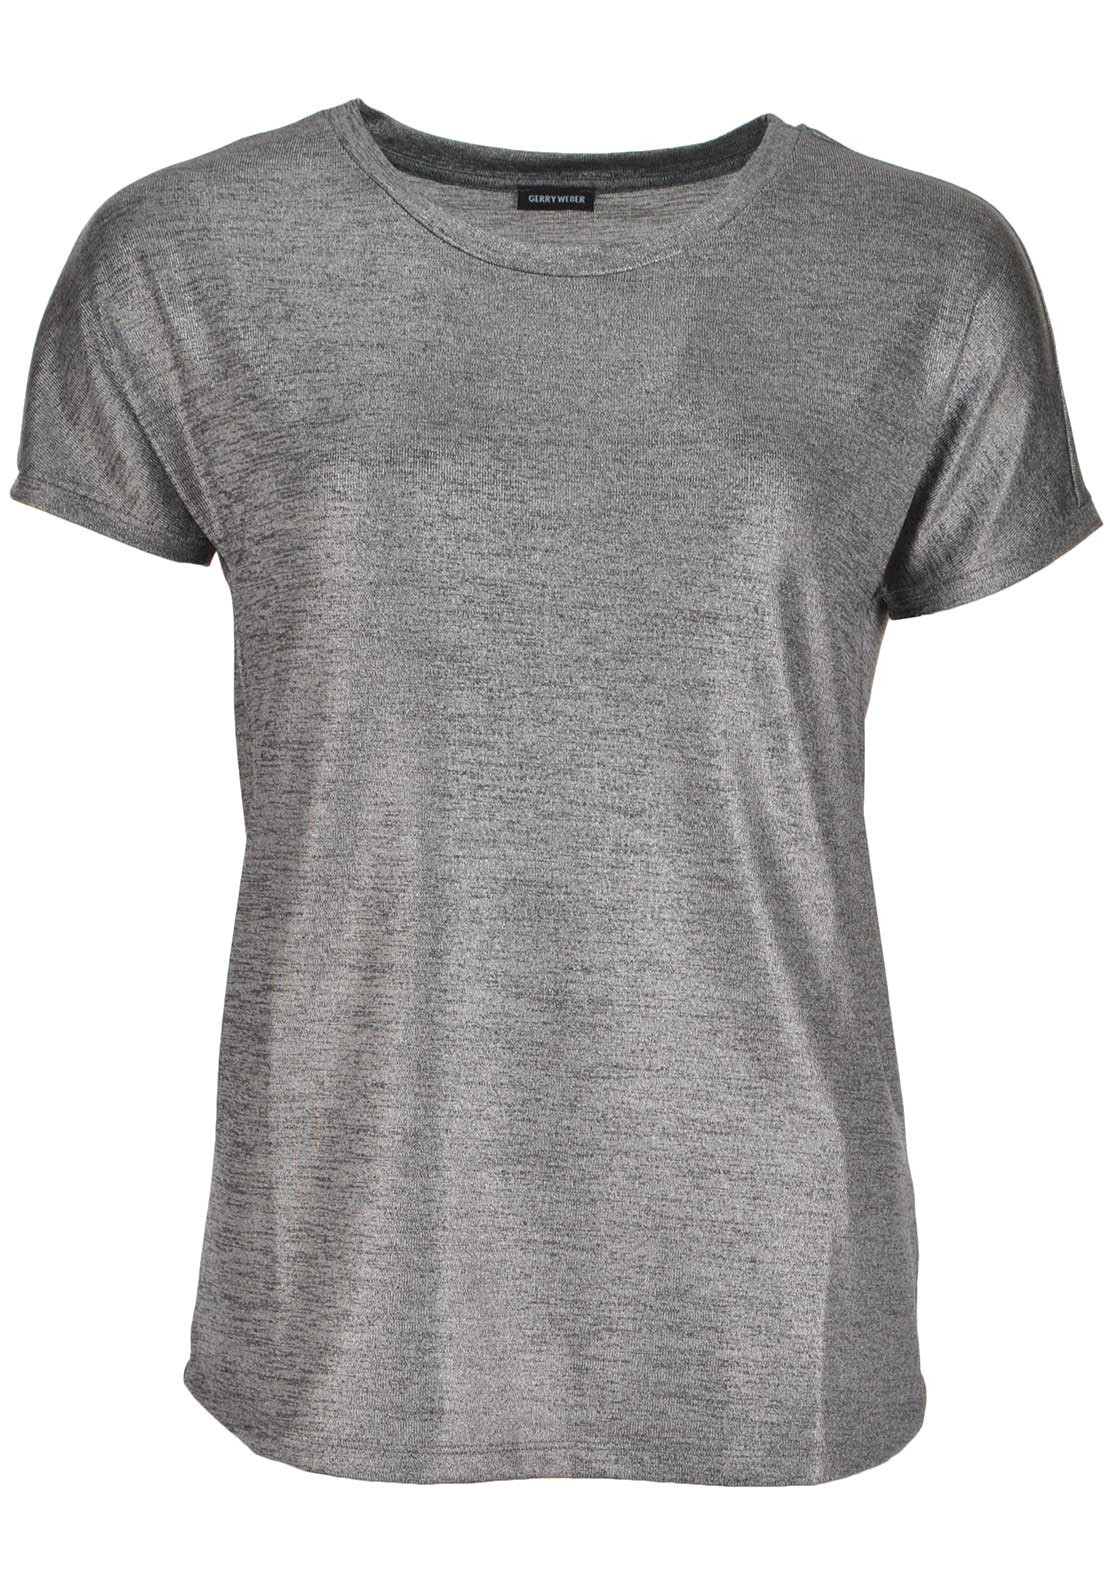 Gerry Weber Shimmer Short Sleeve Top, Silver Grey